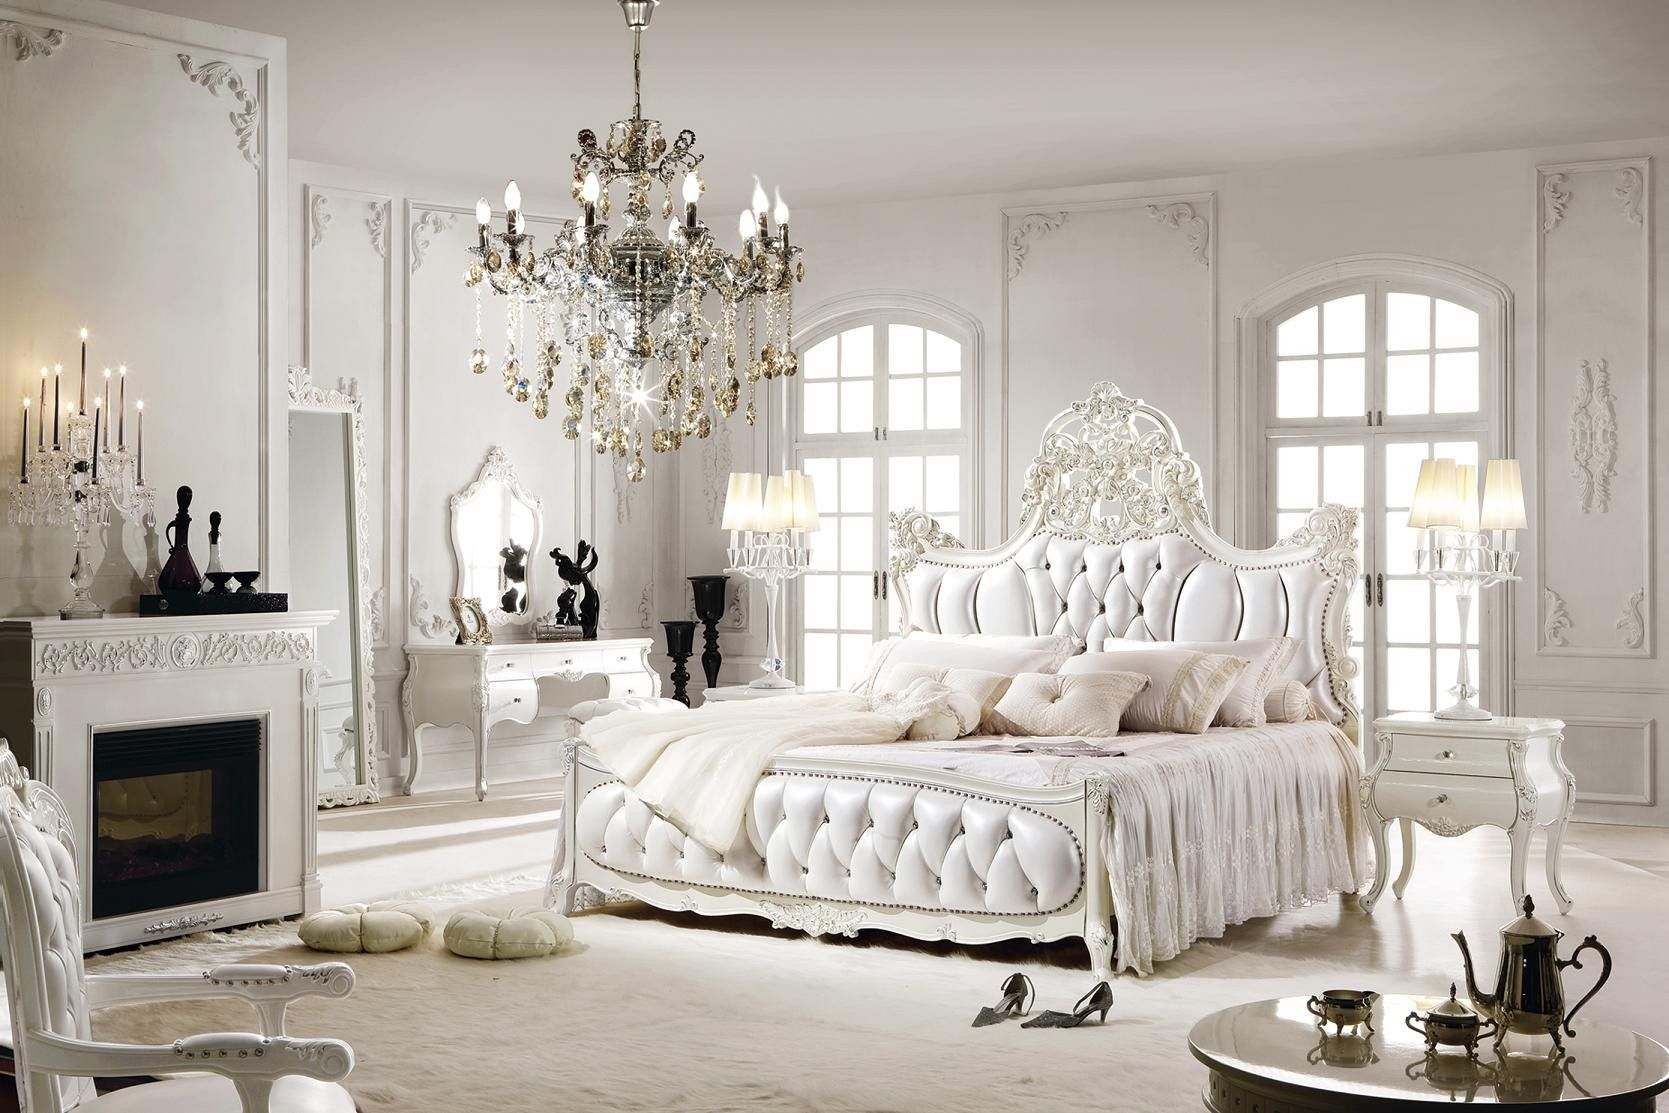 luxurious victorian bedroom white furniture. decorating theme bedrooms maries manor luxury bedroom designs marie antoinette style ideas french provincial furniture barou2026 luxurious victorian white